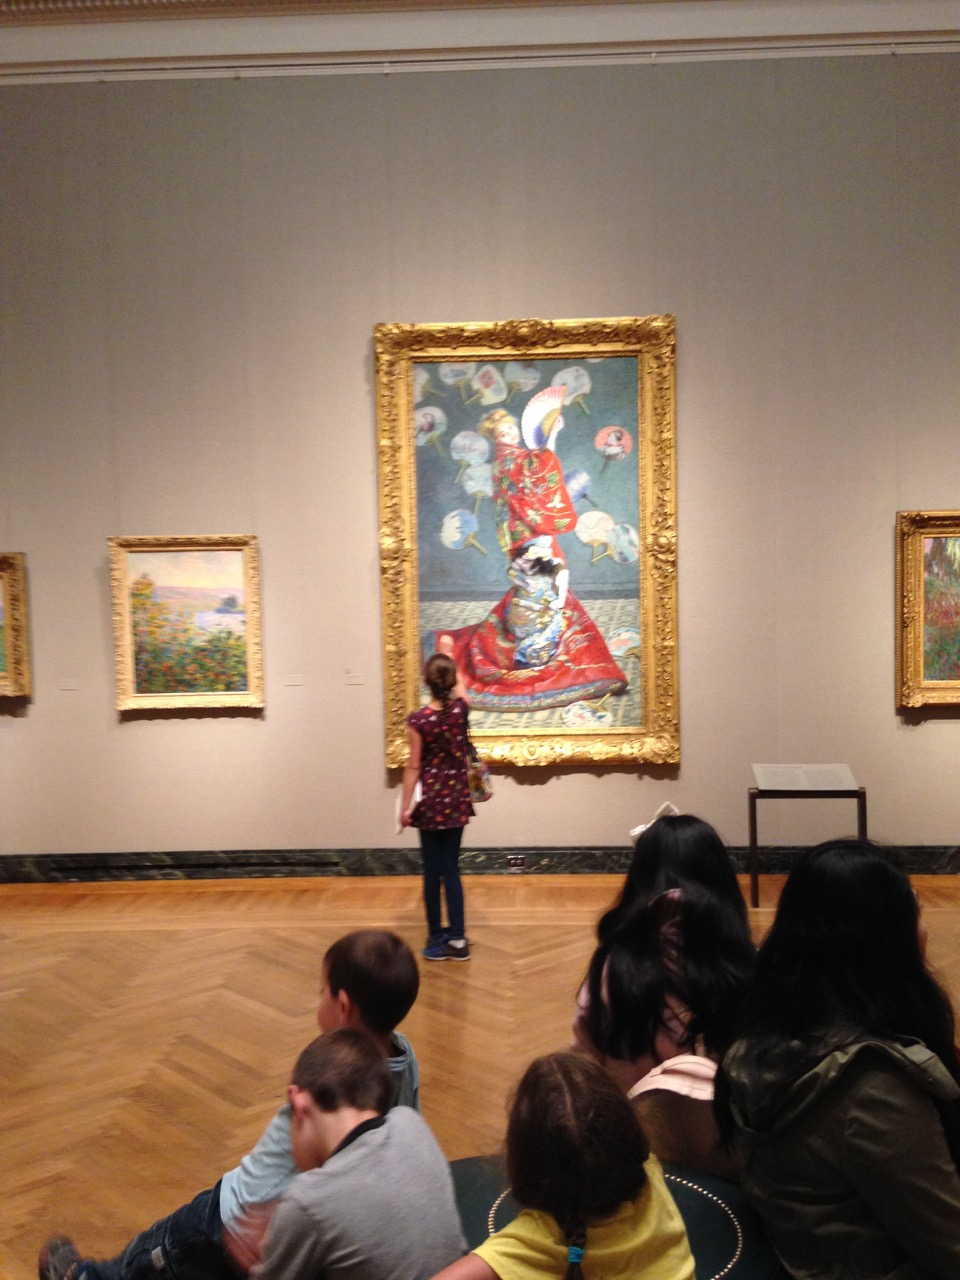 Bella examines Monet's dramatic painting of his wife in a kimono.